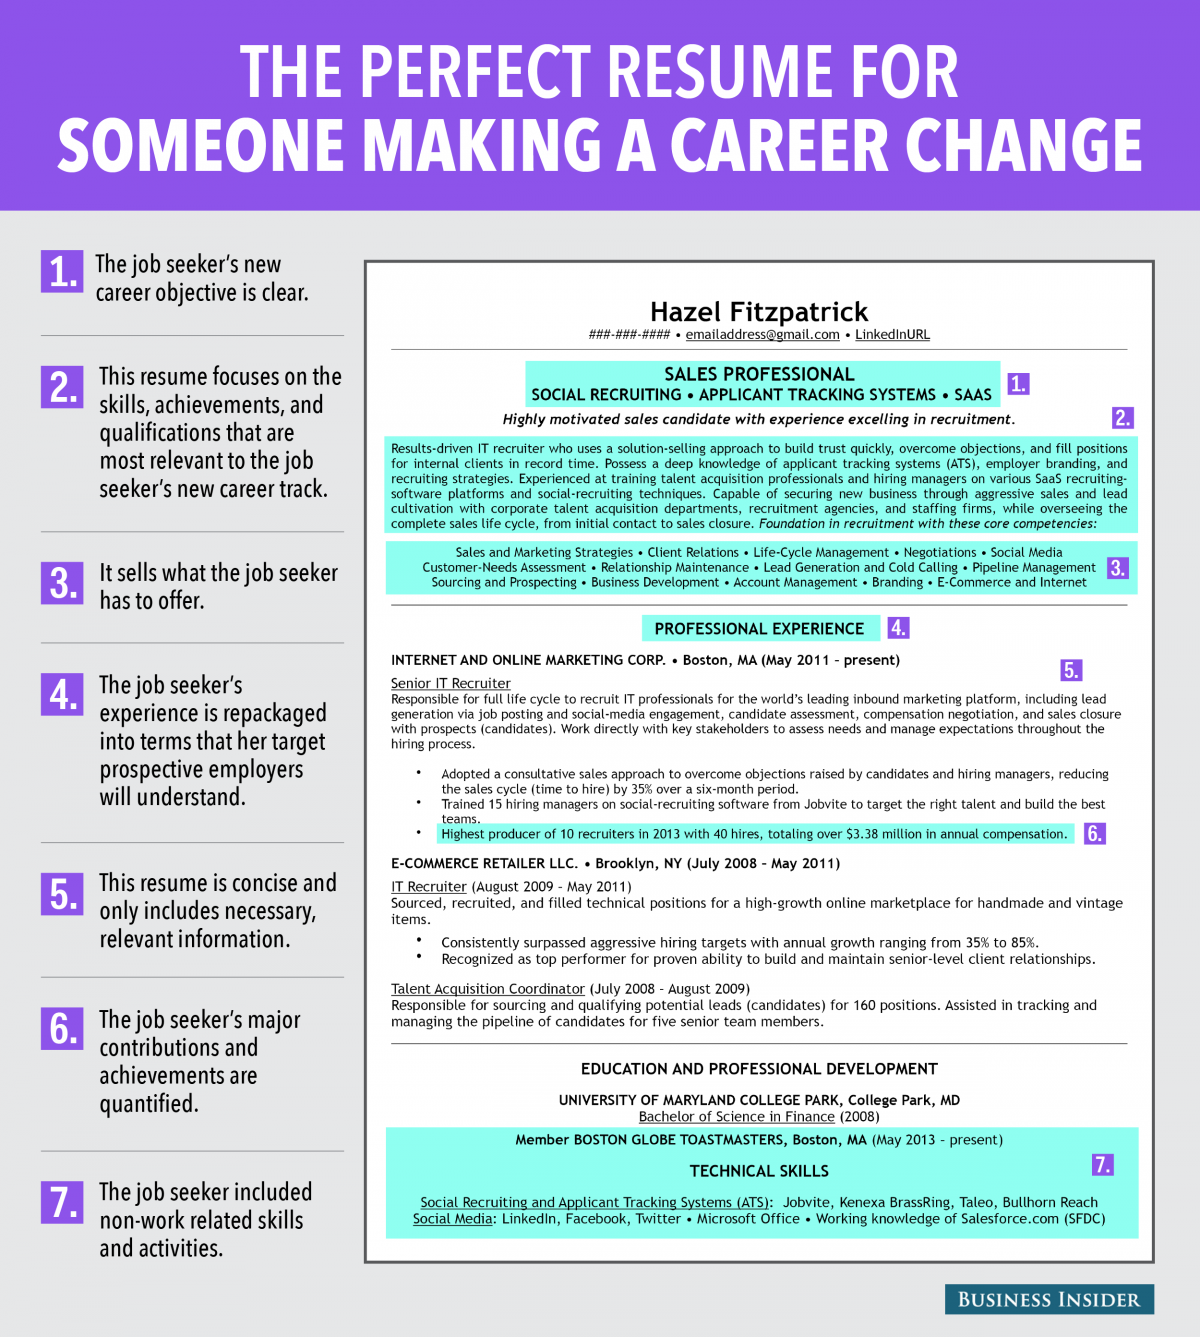 reasons this is an excellent resume for someone making a career 7 reasons this is an excellent resume for someone making a career change business insider